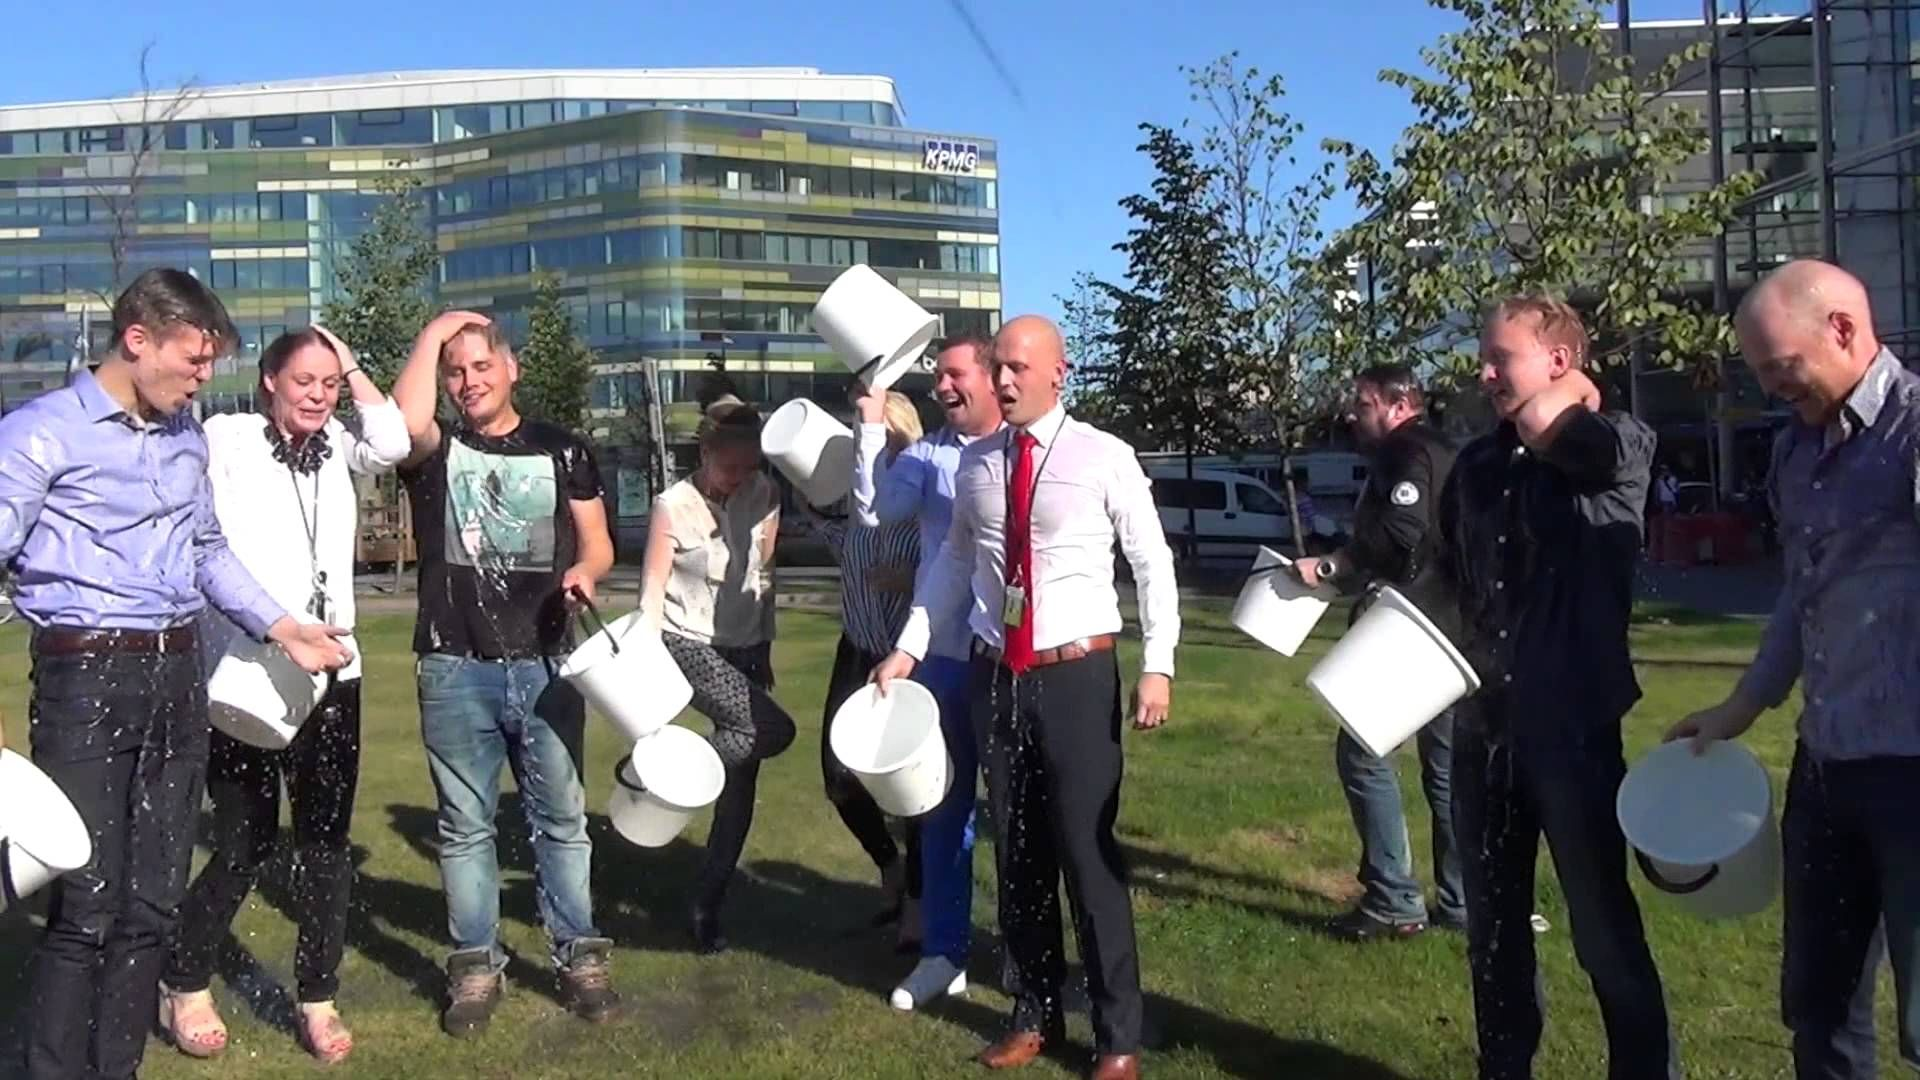 We participated in #alsicebucketchallenge and donated 500€ to Lihastautiliitto. We nominated Monster in Finland, Oikotie, Uranus, Talentum Media and Forenom Finland!